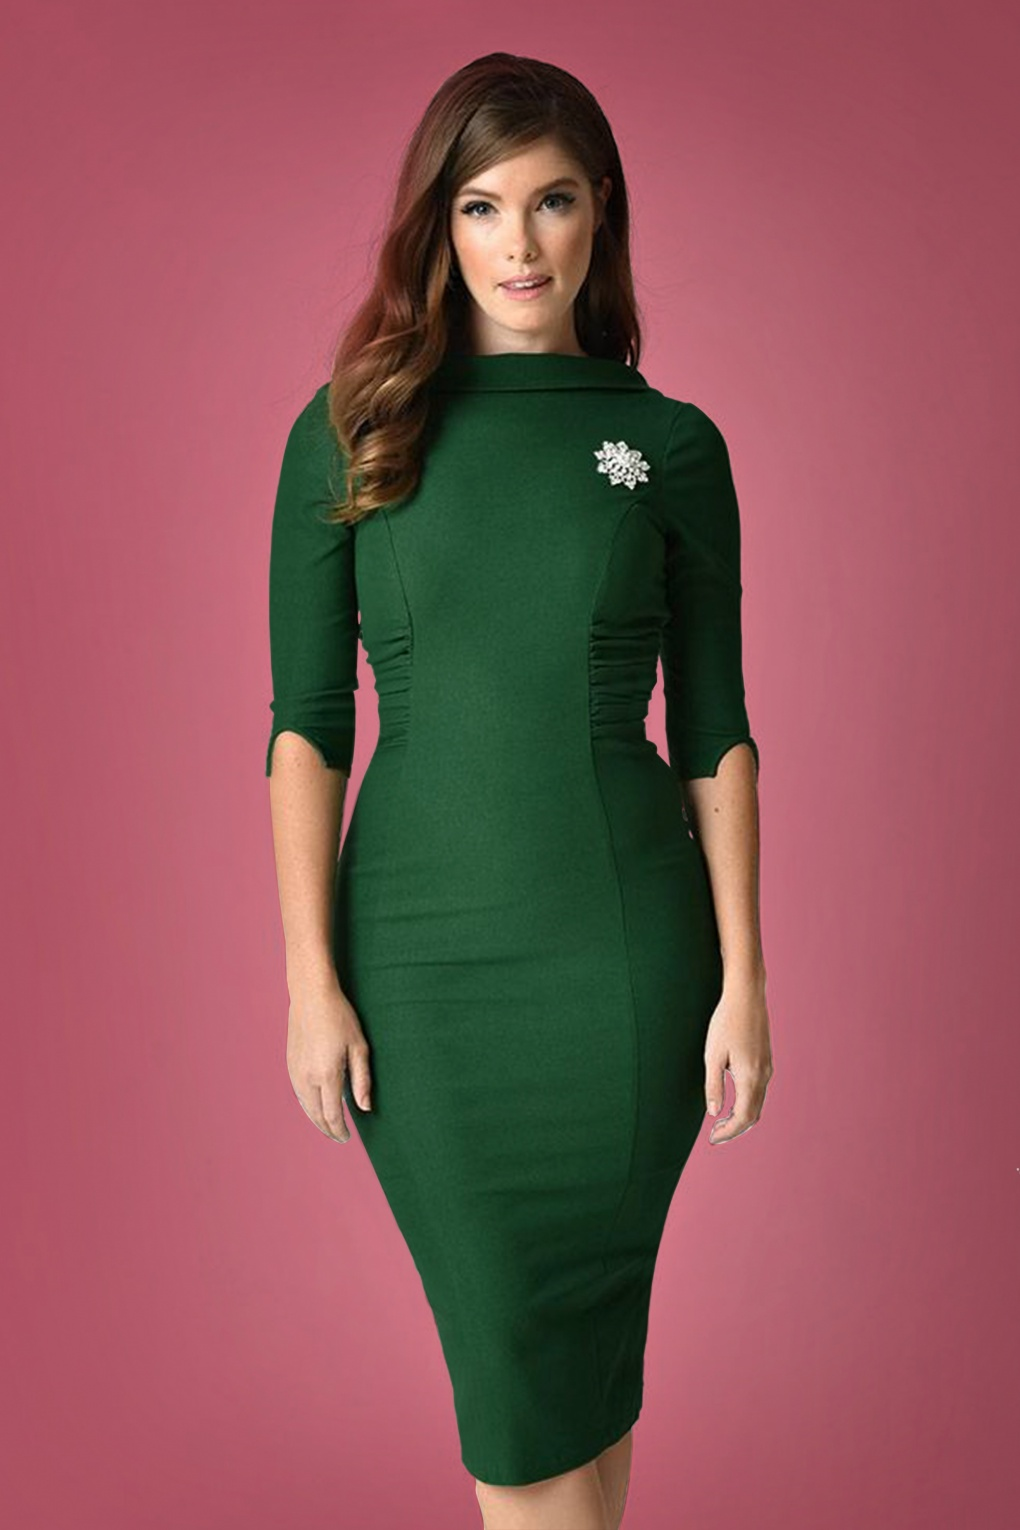 Dress: 60s Lucinda Wiggle Dress In Emerald